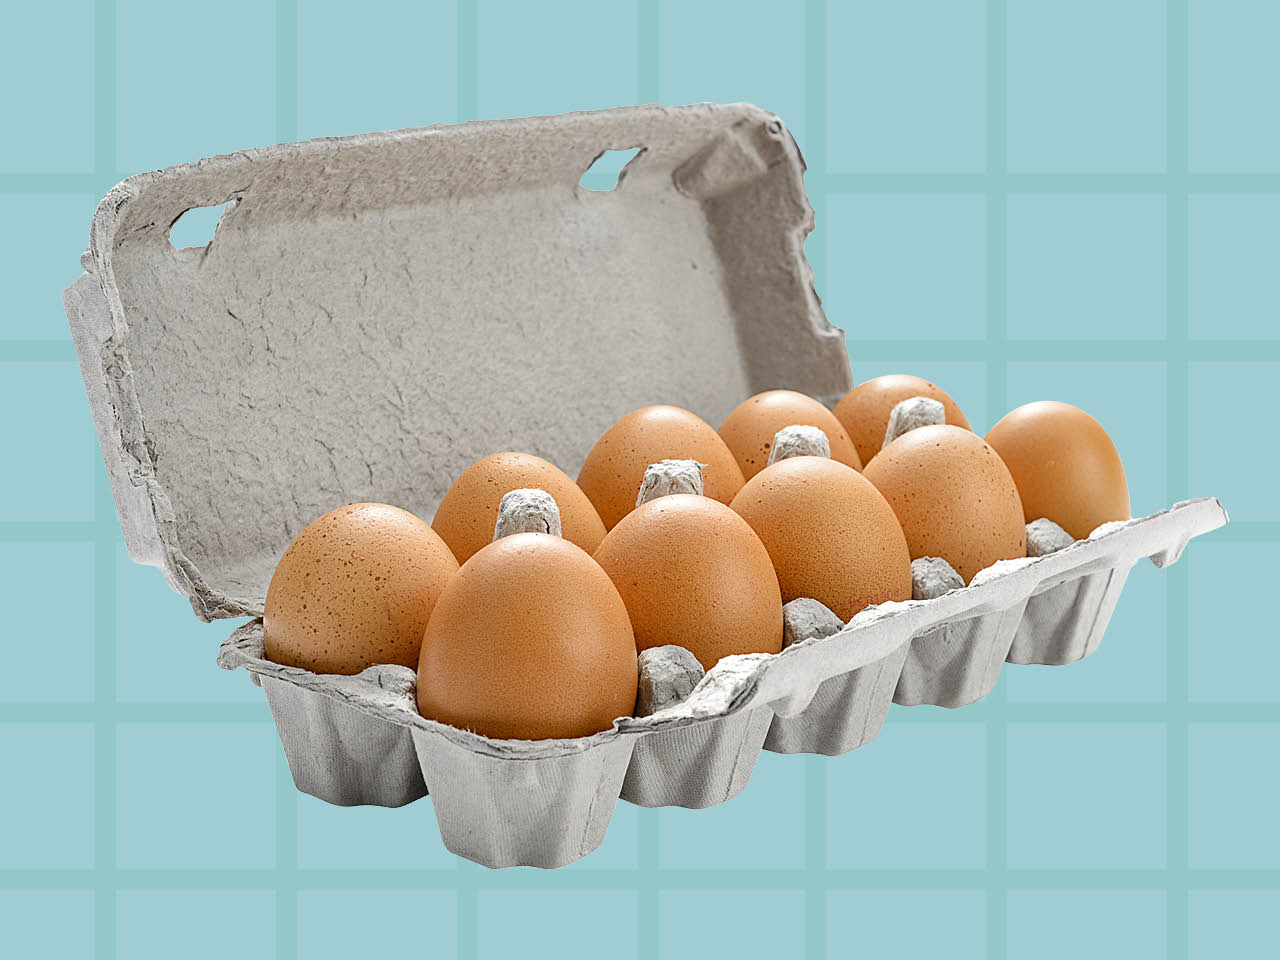 How to tell if an egg is bad - full egg carton